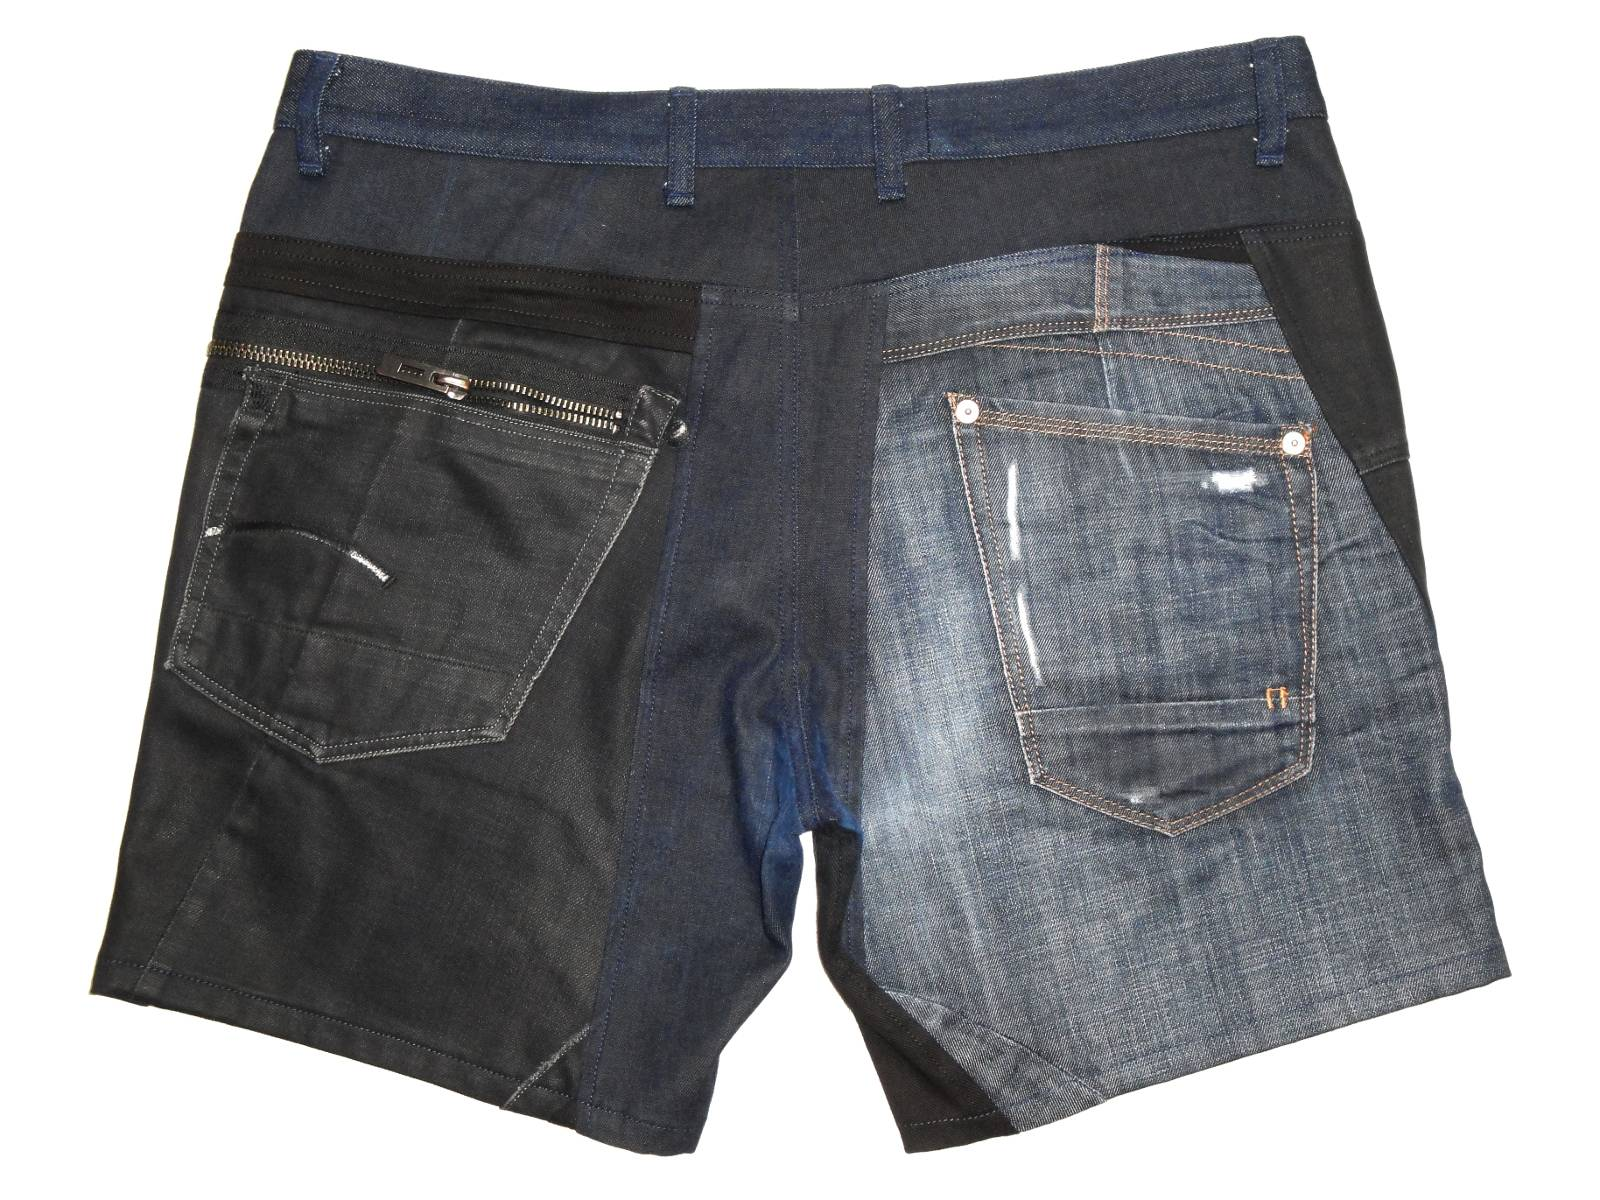 Trenim shorts off your favourite jeans